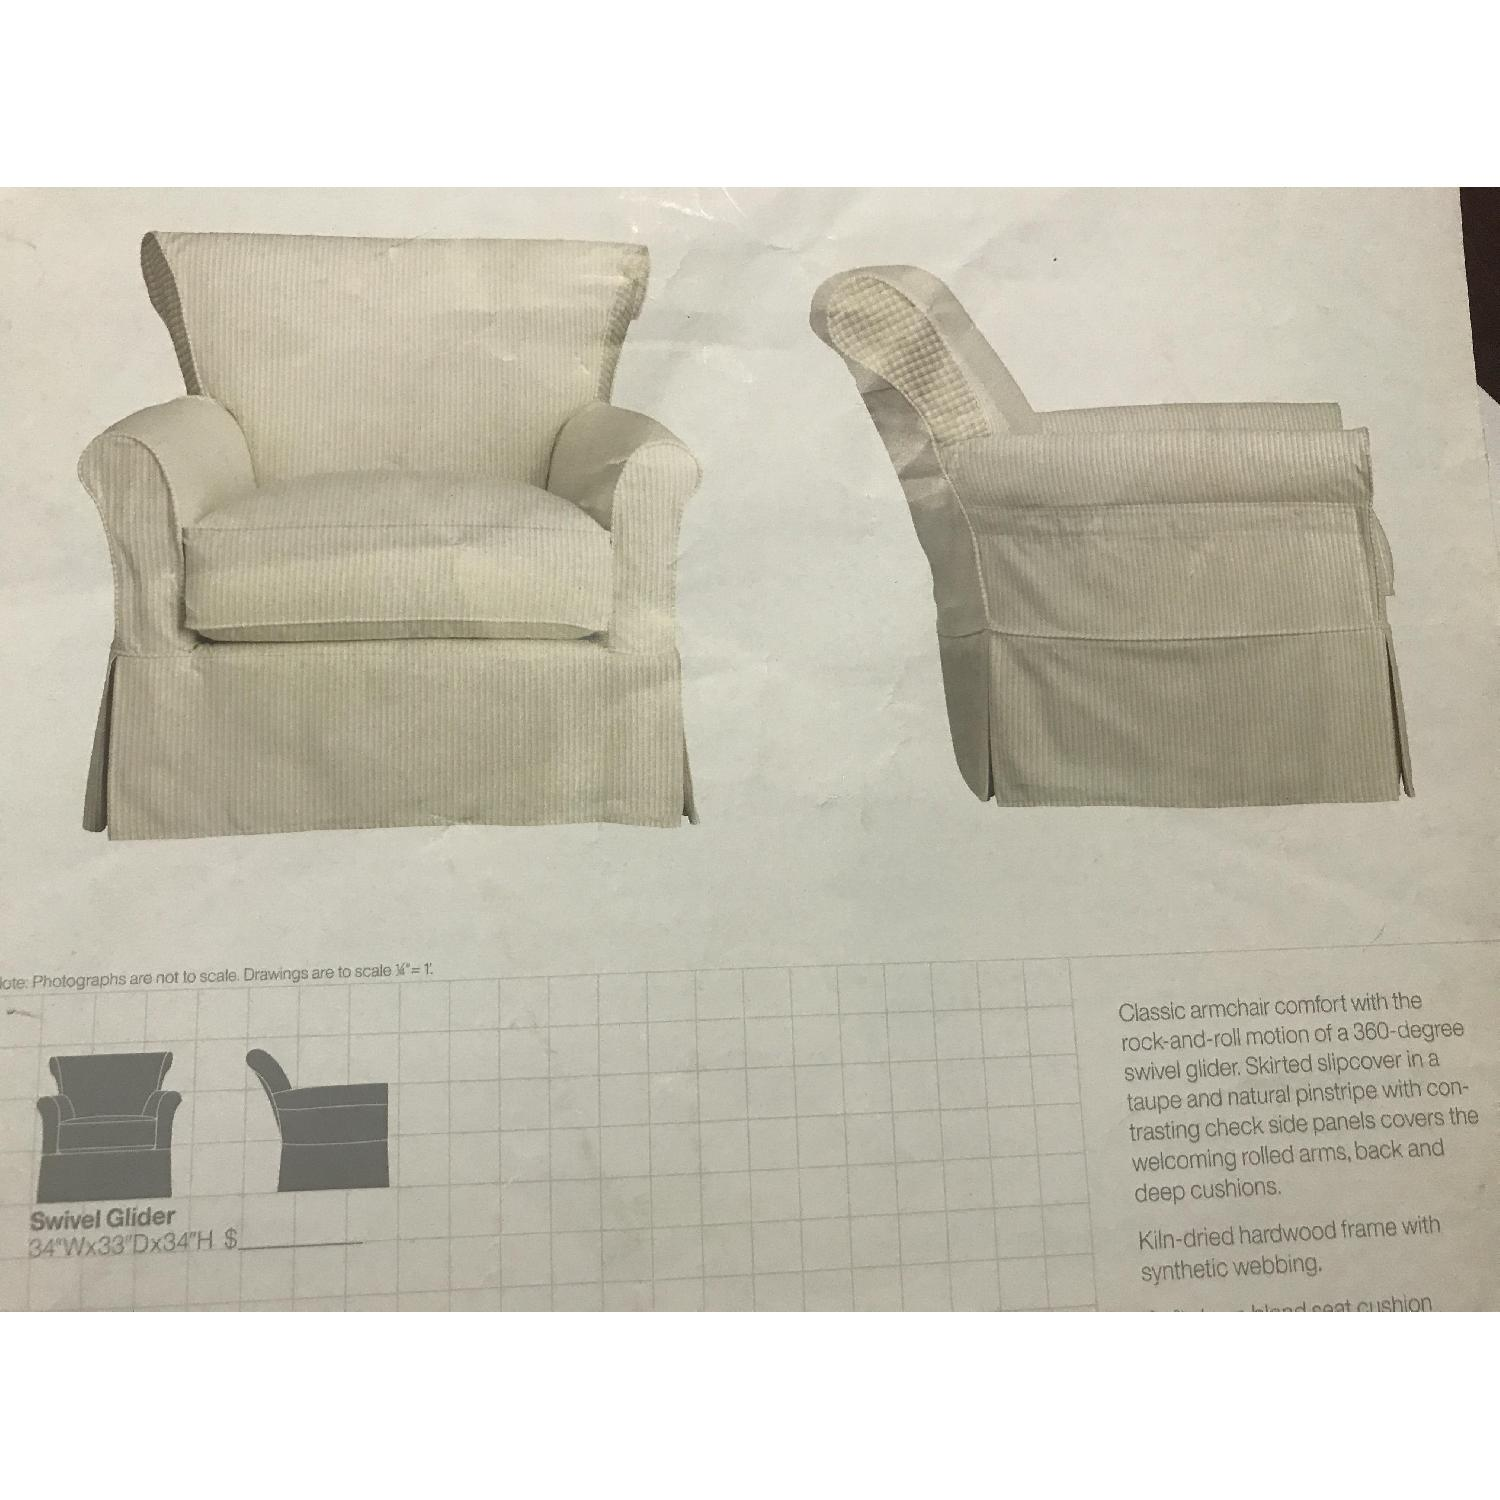 Crate & Barrel Avery Swivel Glider with w/ Pinstripe Slipcover-17